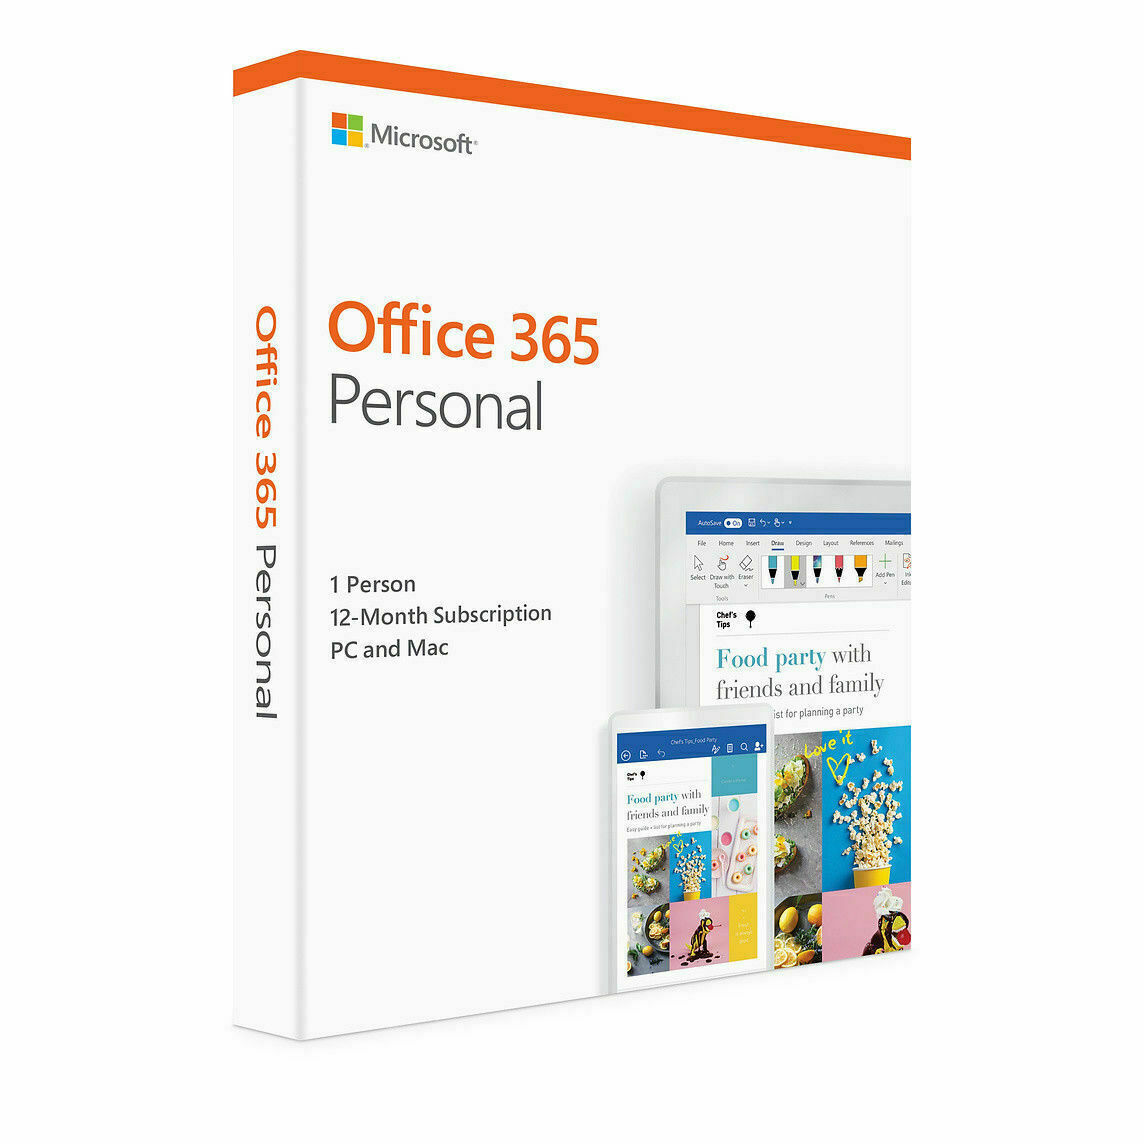 Details about Microsoft Office 365 Personal | 12-month subscription, 1  Person PC/Mac